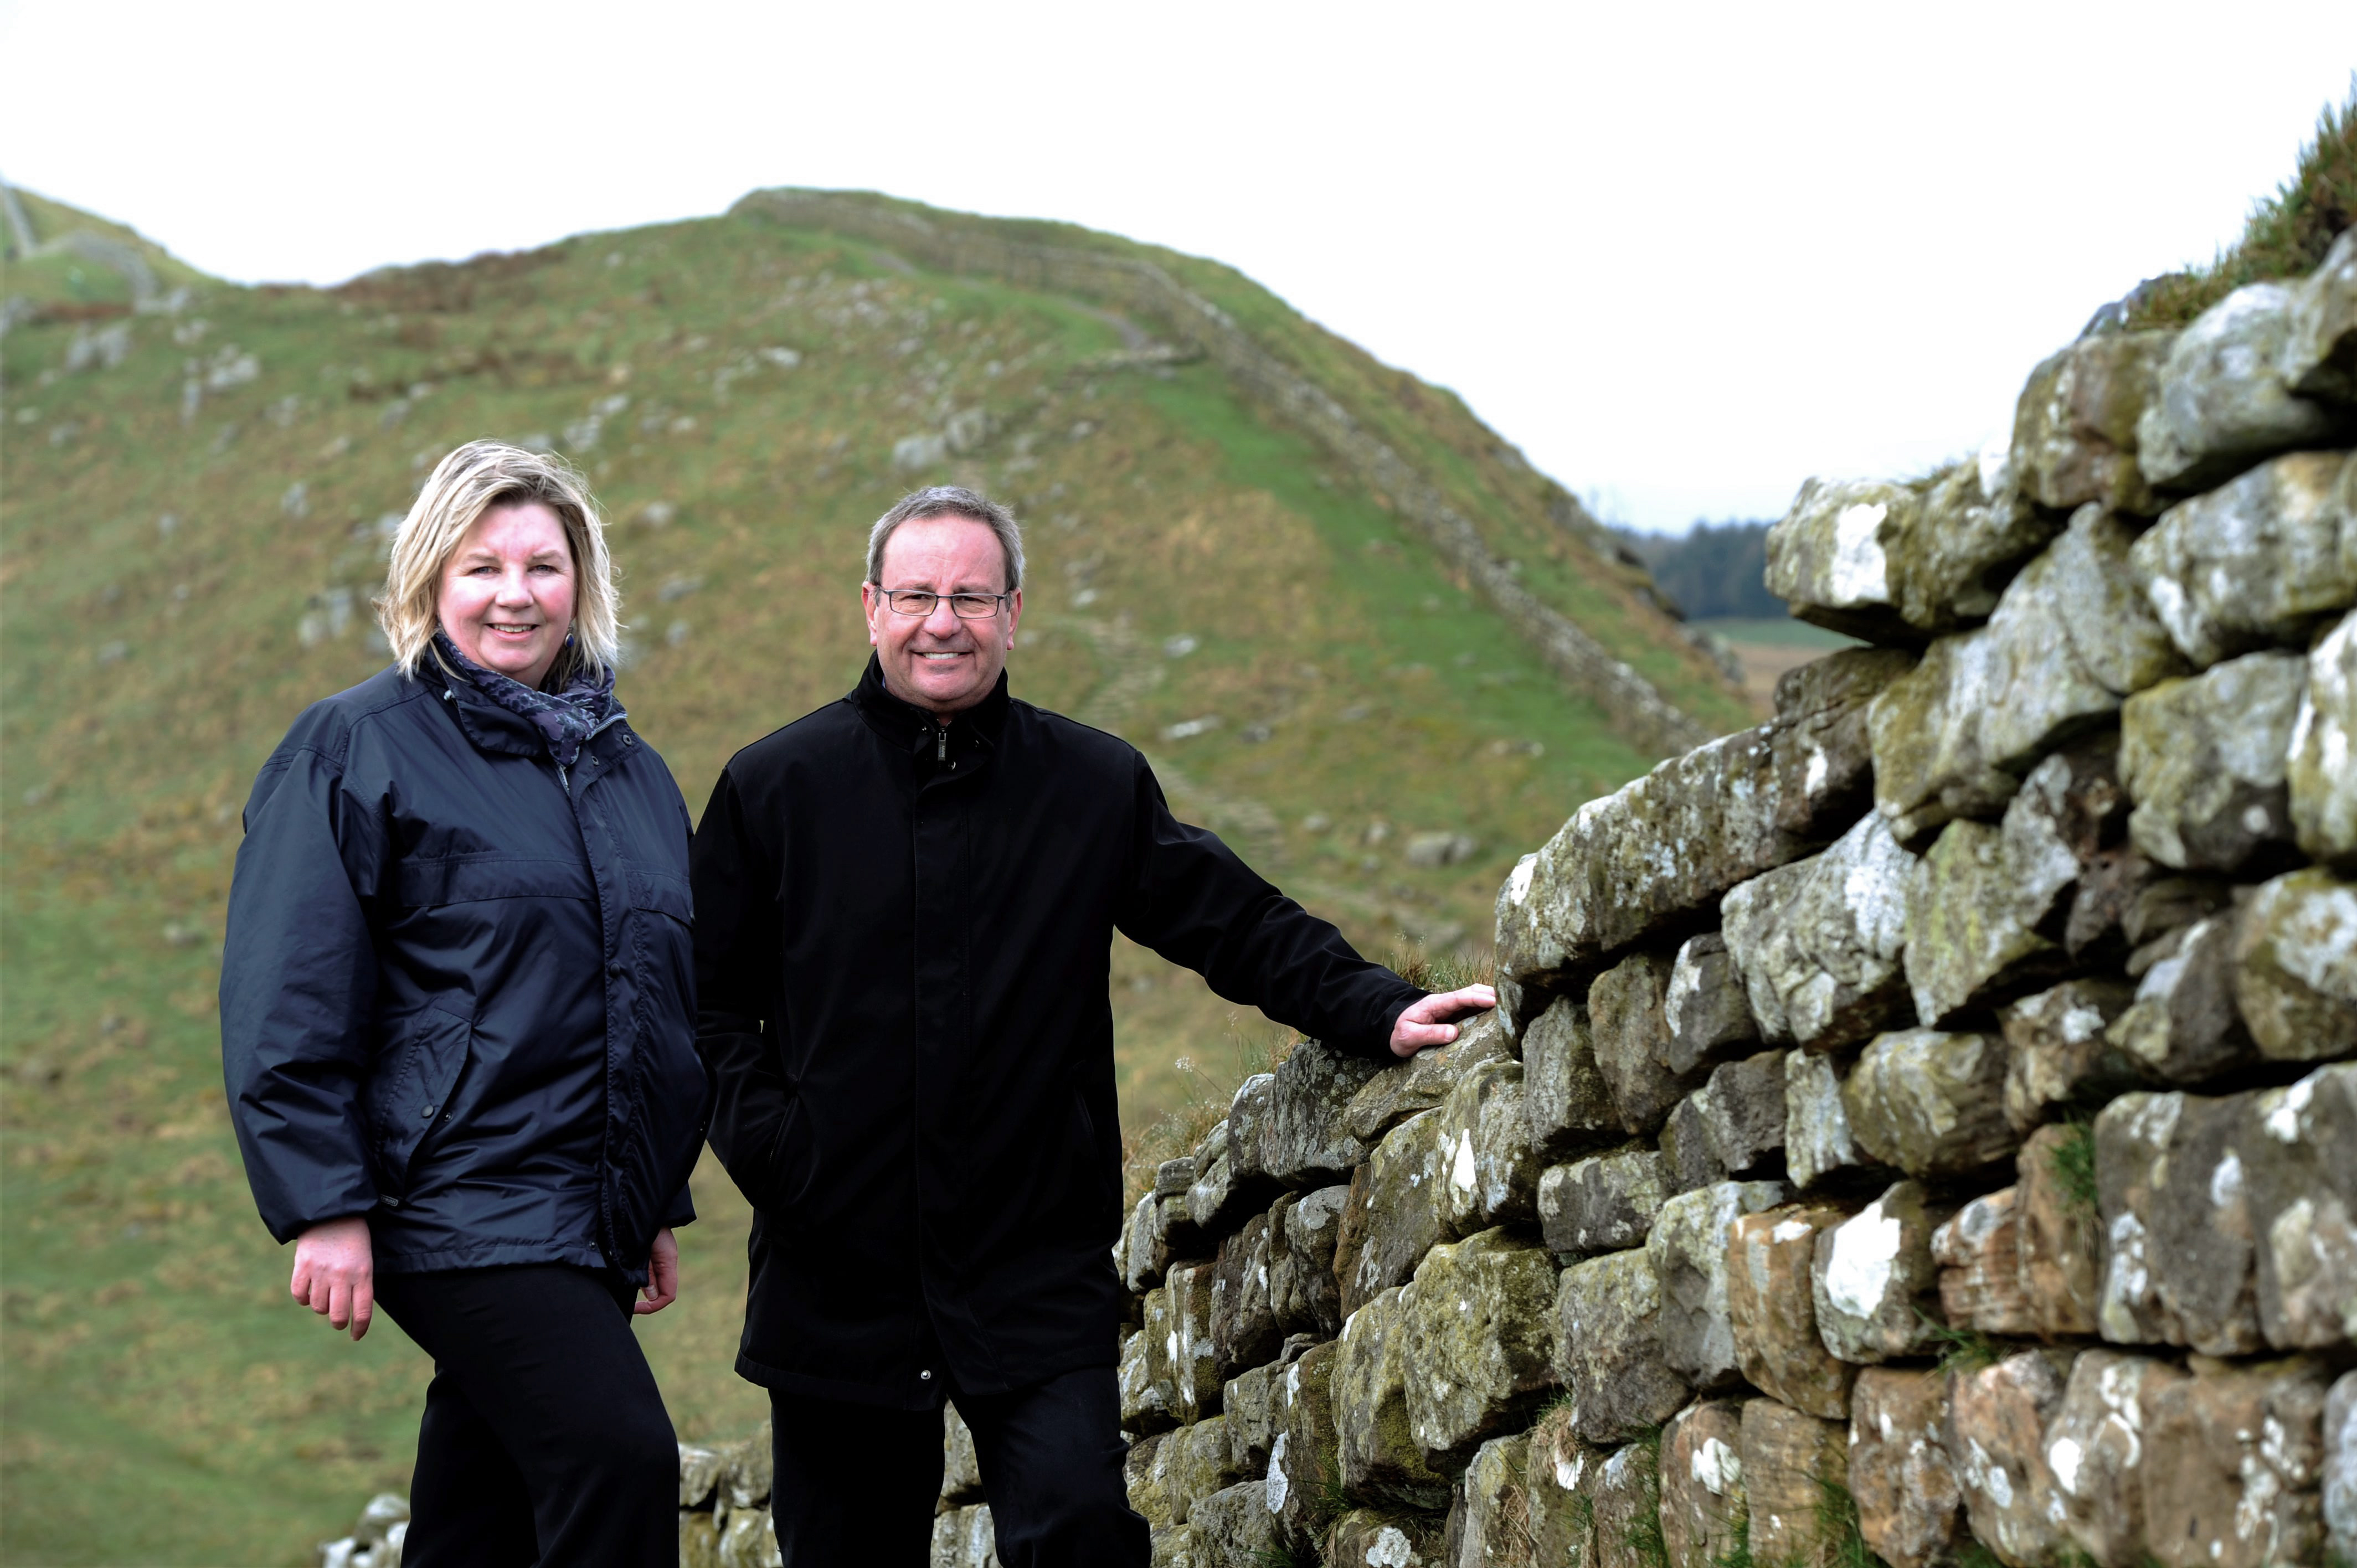 Hadrian's Wall receives £537,185 funding boost